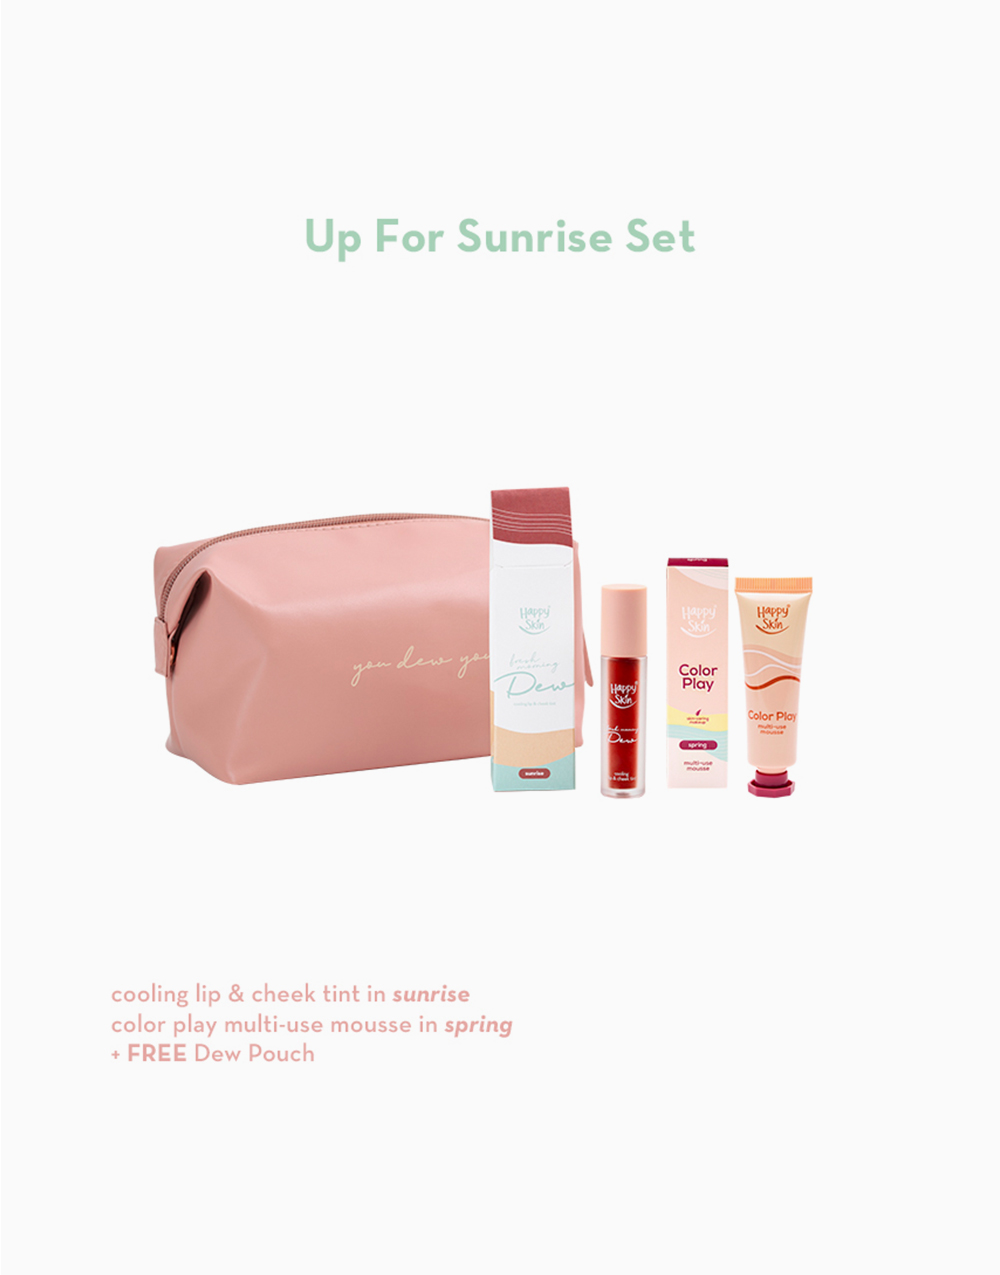 Up for Sunrise Set (Tint + Mousse) by Happy Skin